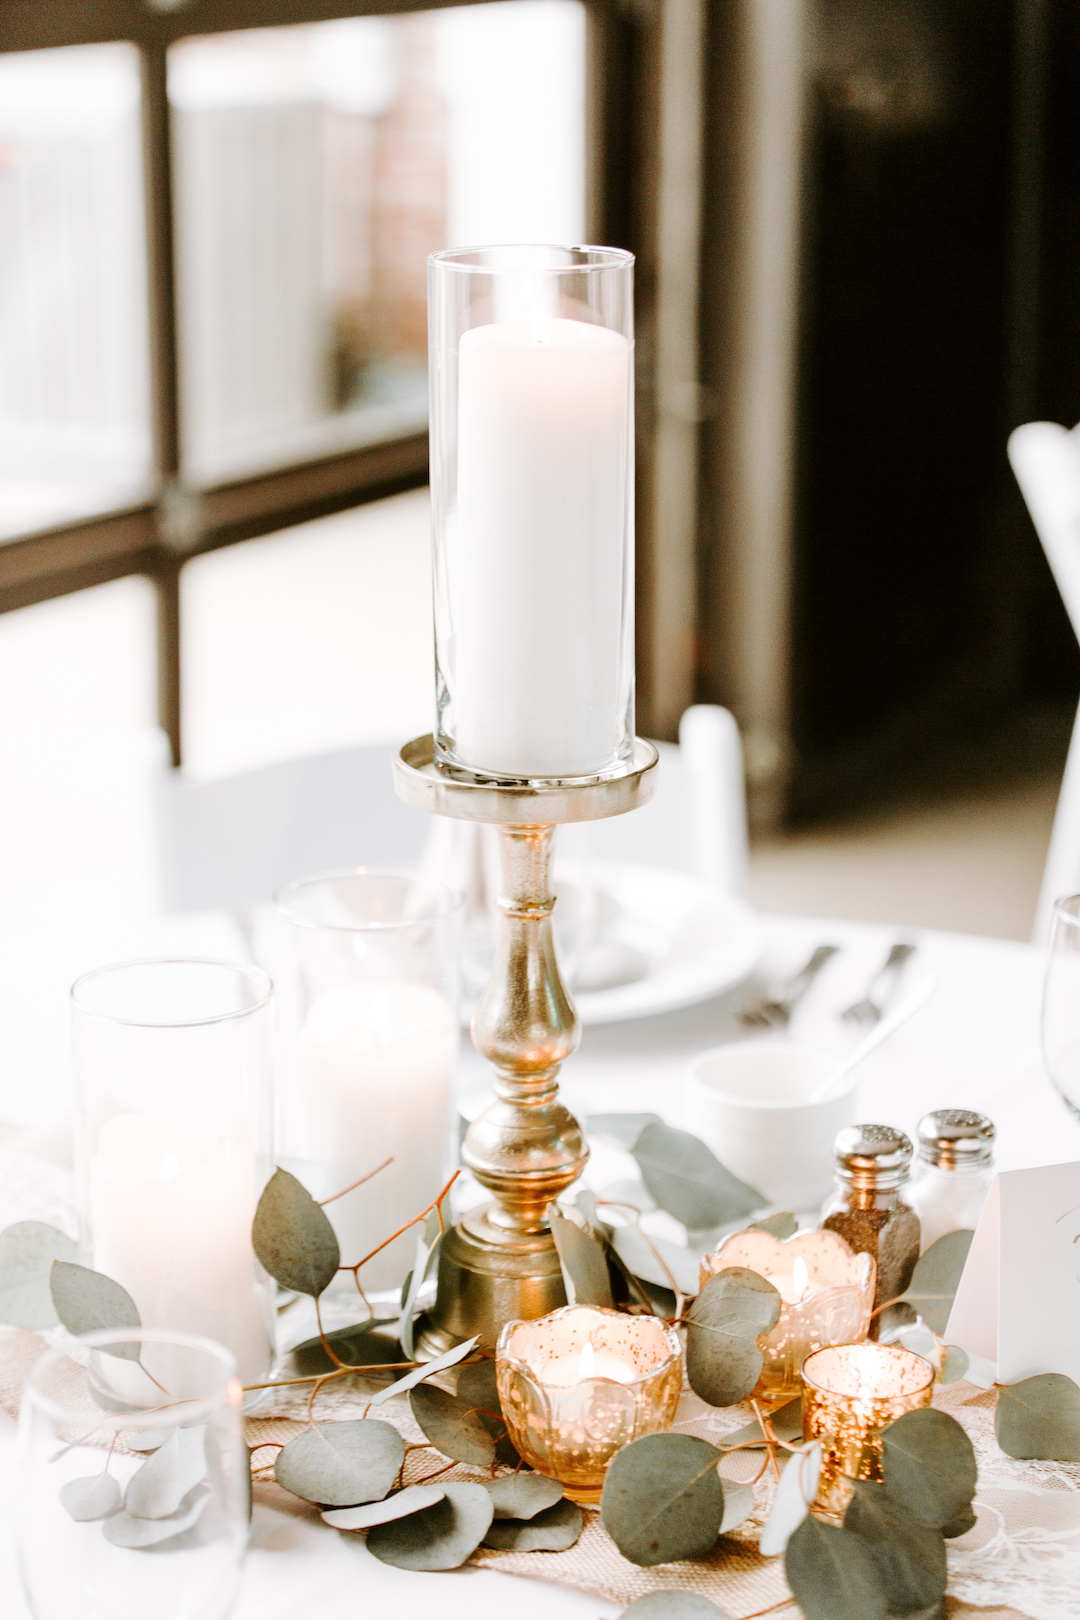 Candle wedding centerpieces: Charming CD&ME outdoor wedding captured by Eiza Photography featured on CHI thee WED. Find more wedding inspiration at chitheewed.com!